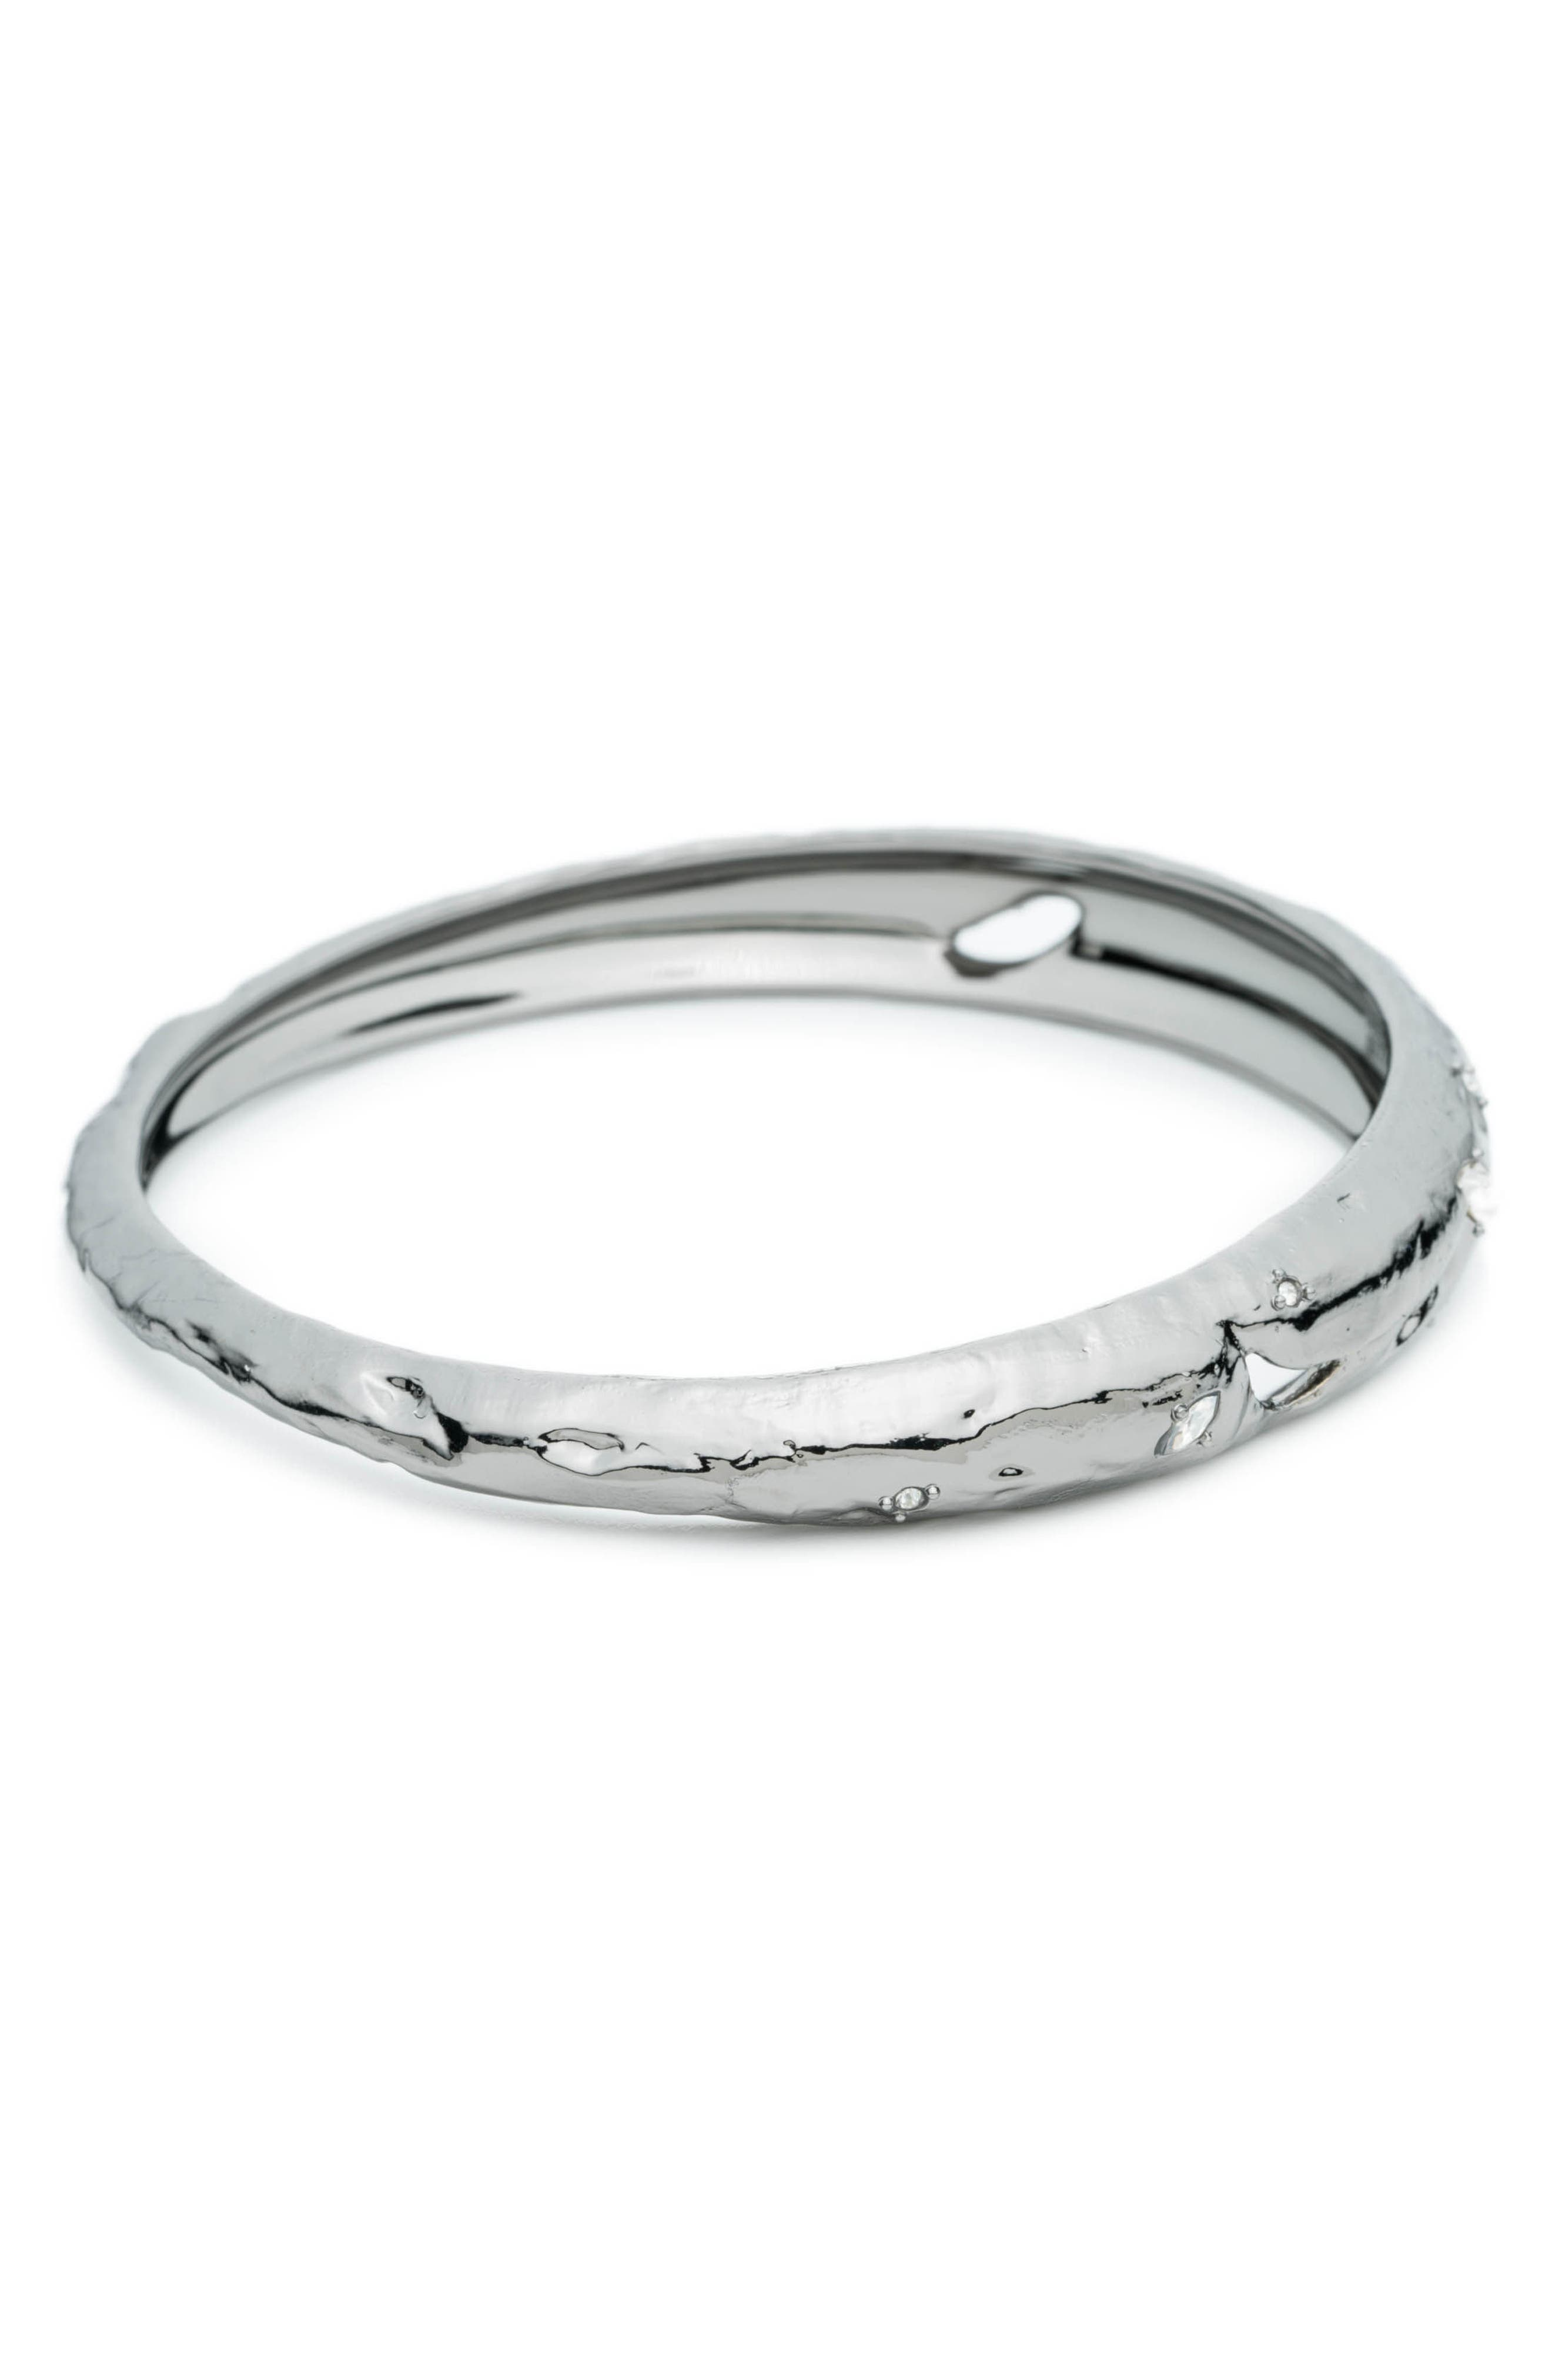 Crystal Elements Bangle,                             Alternate thumbnail 3, color,                             SILVER